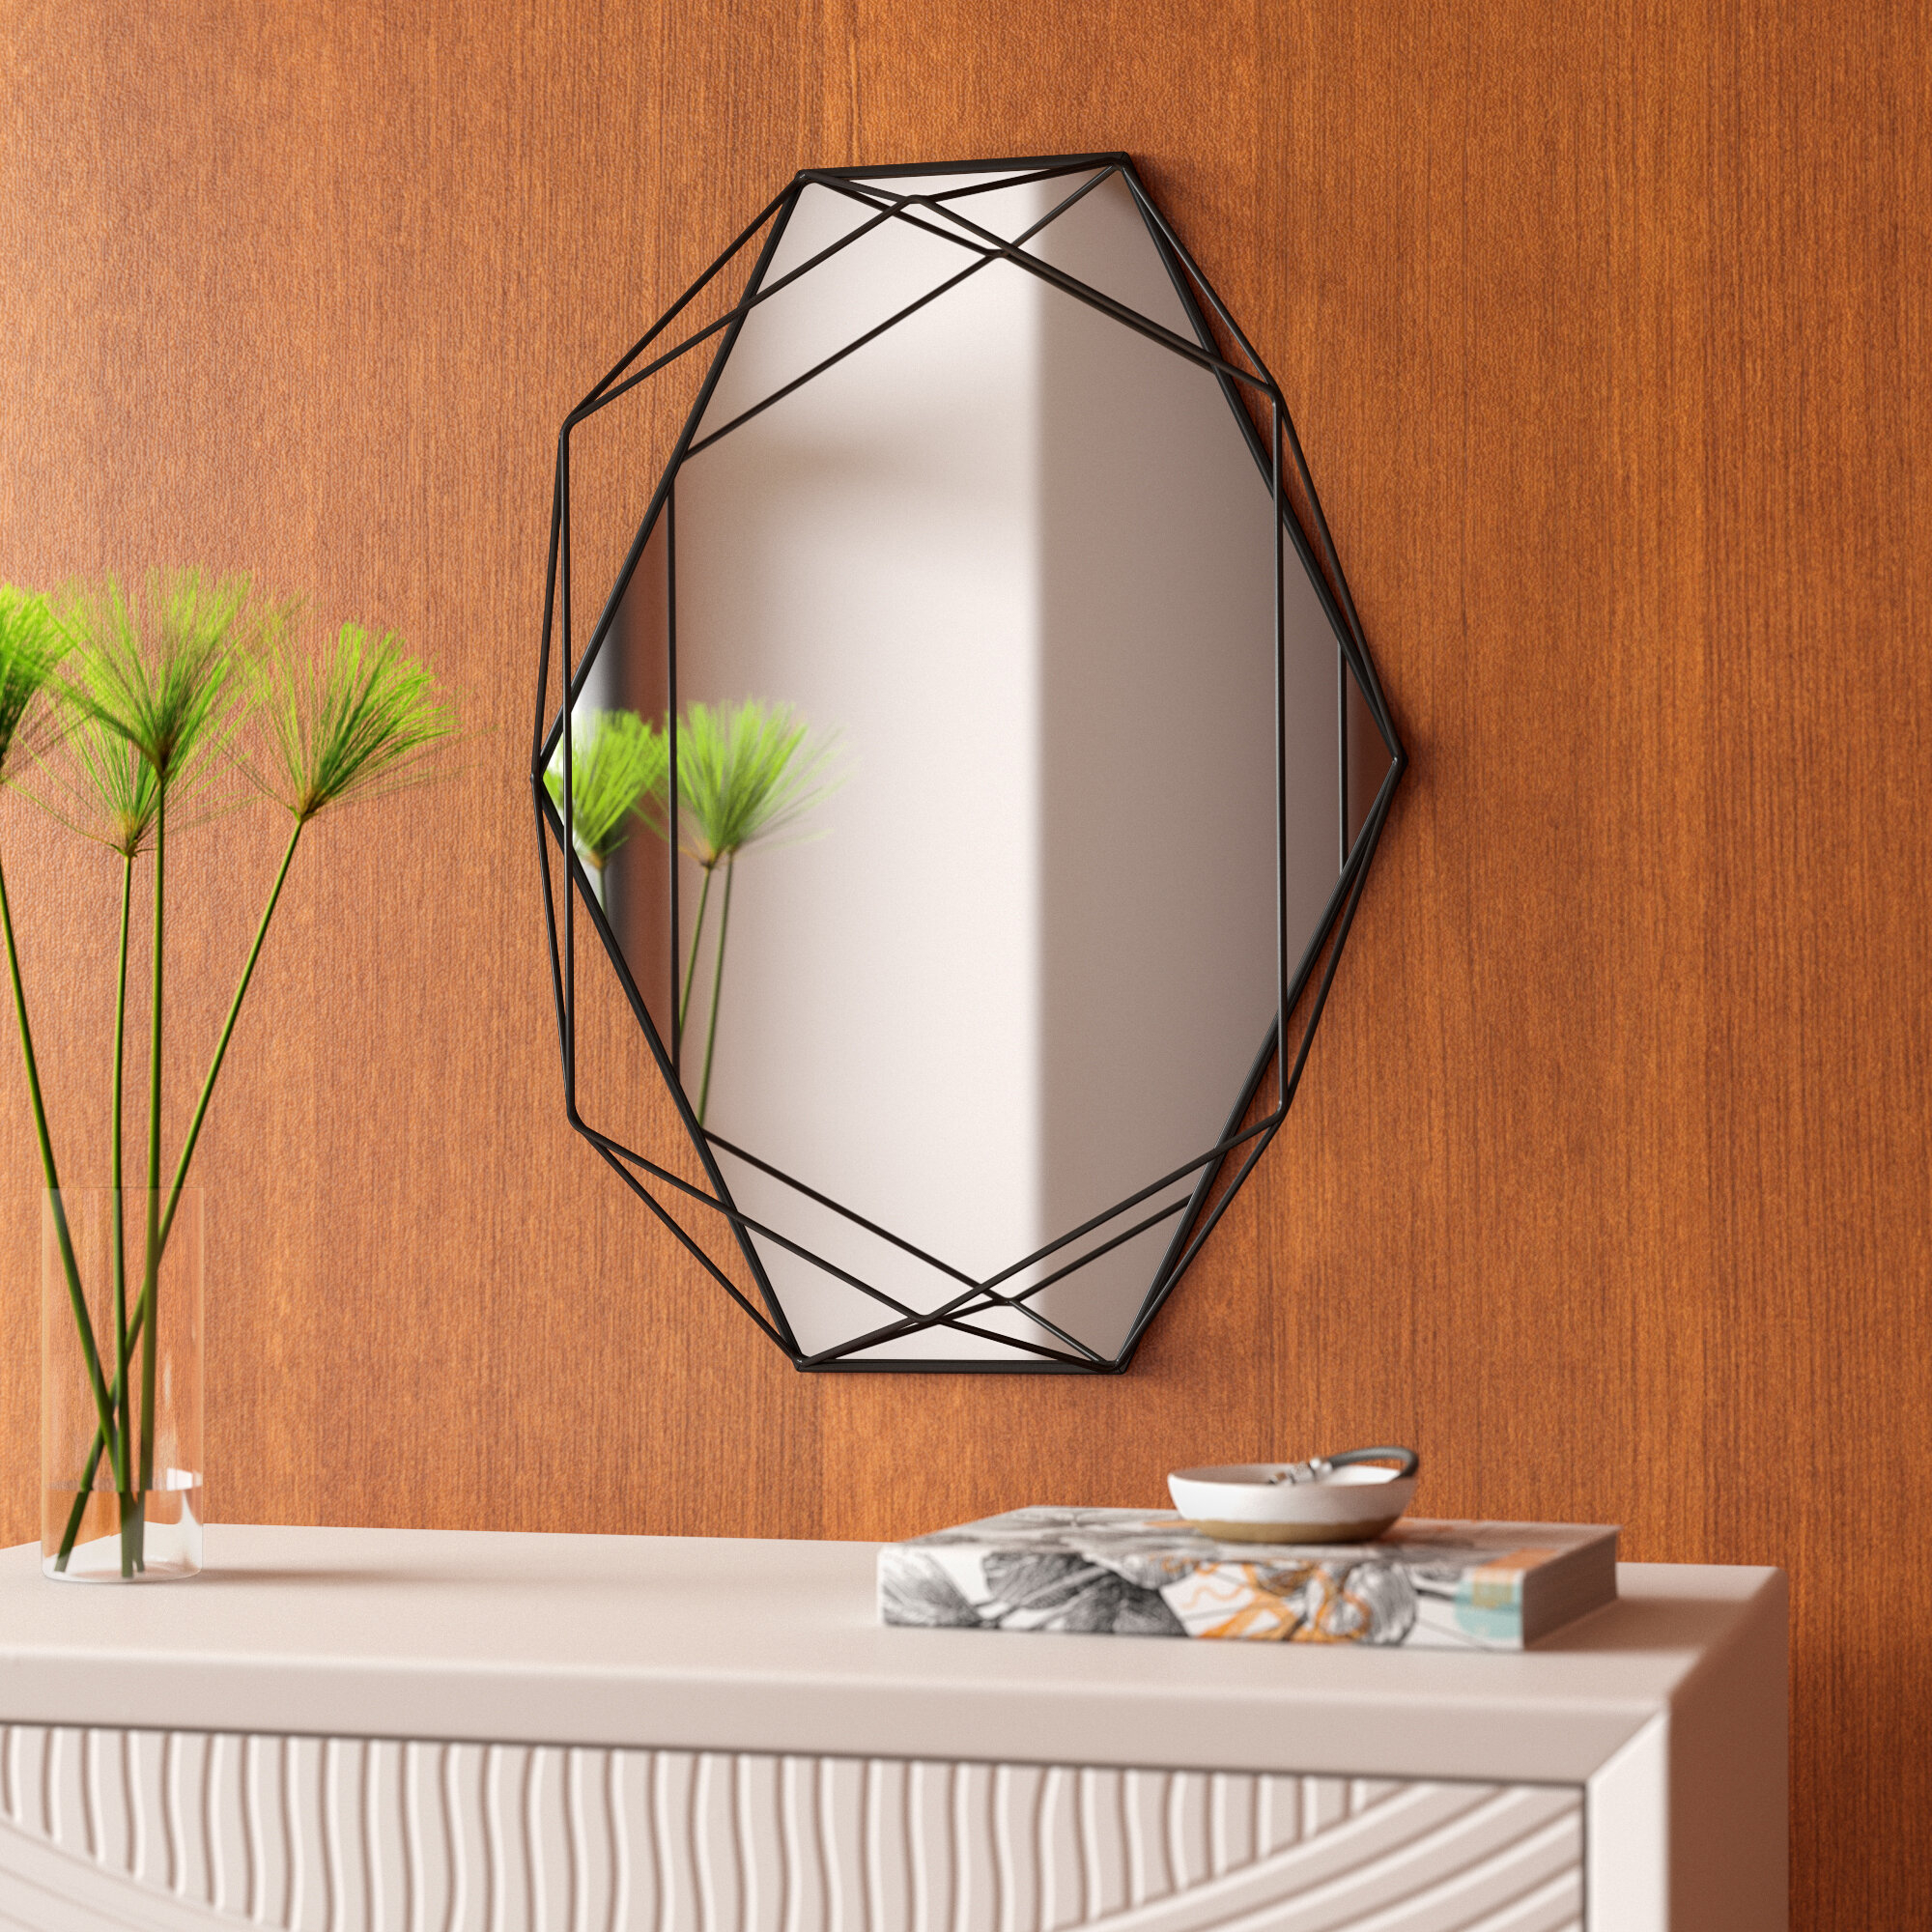 Prisma Modern & Contemporary Accent Mirror With Regard To Dekalb Modern & Contemporary Distressed Accent Mirrors (View 4 of 20)